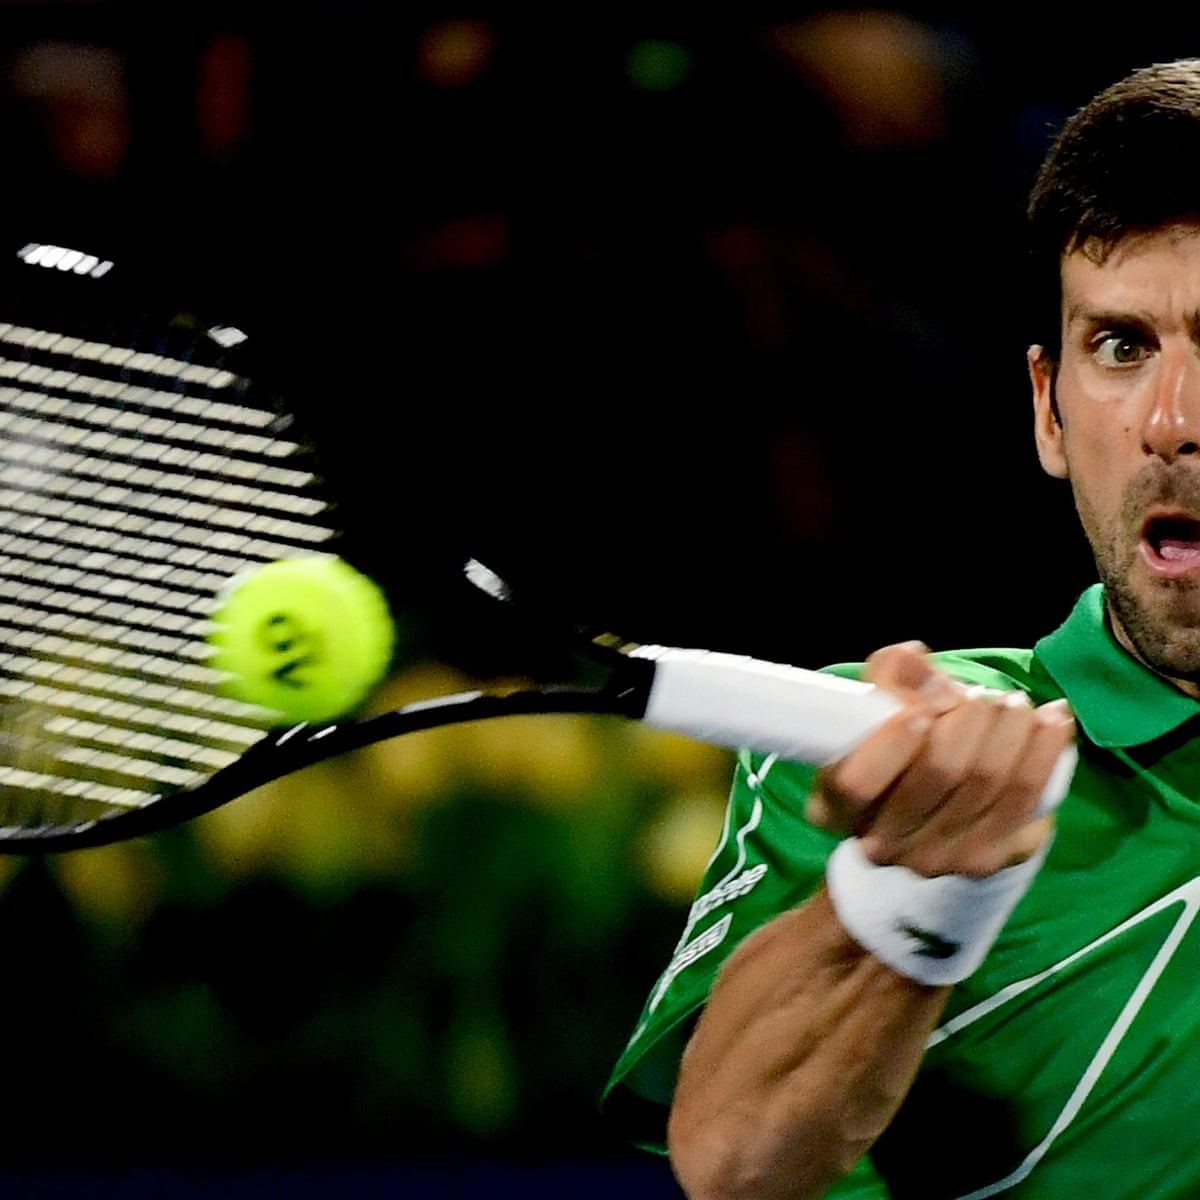 Injured Novak Djokovic Pulls Out Of Western Southern Open Doubles Tennis The Guardian